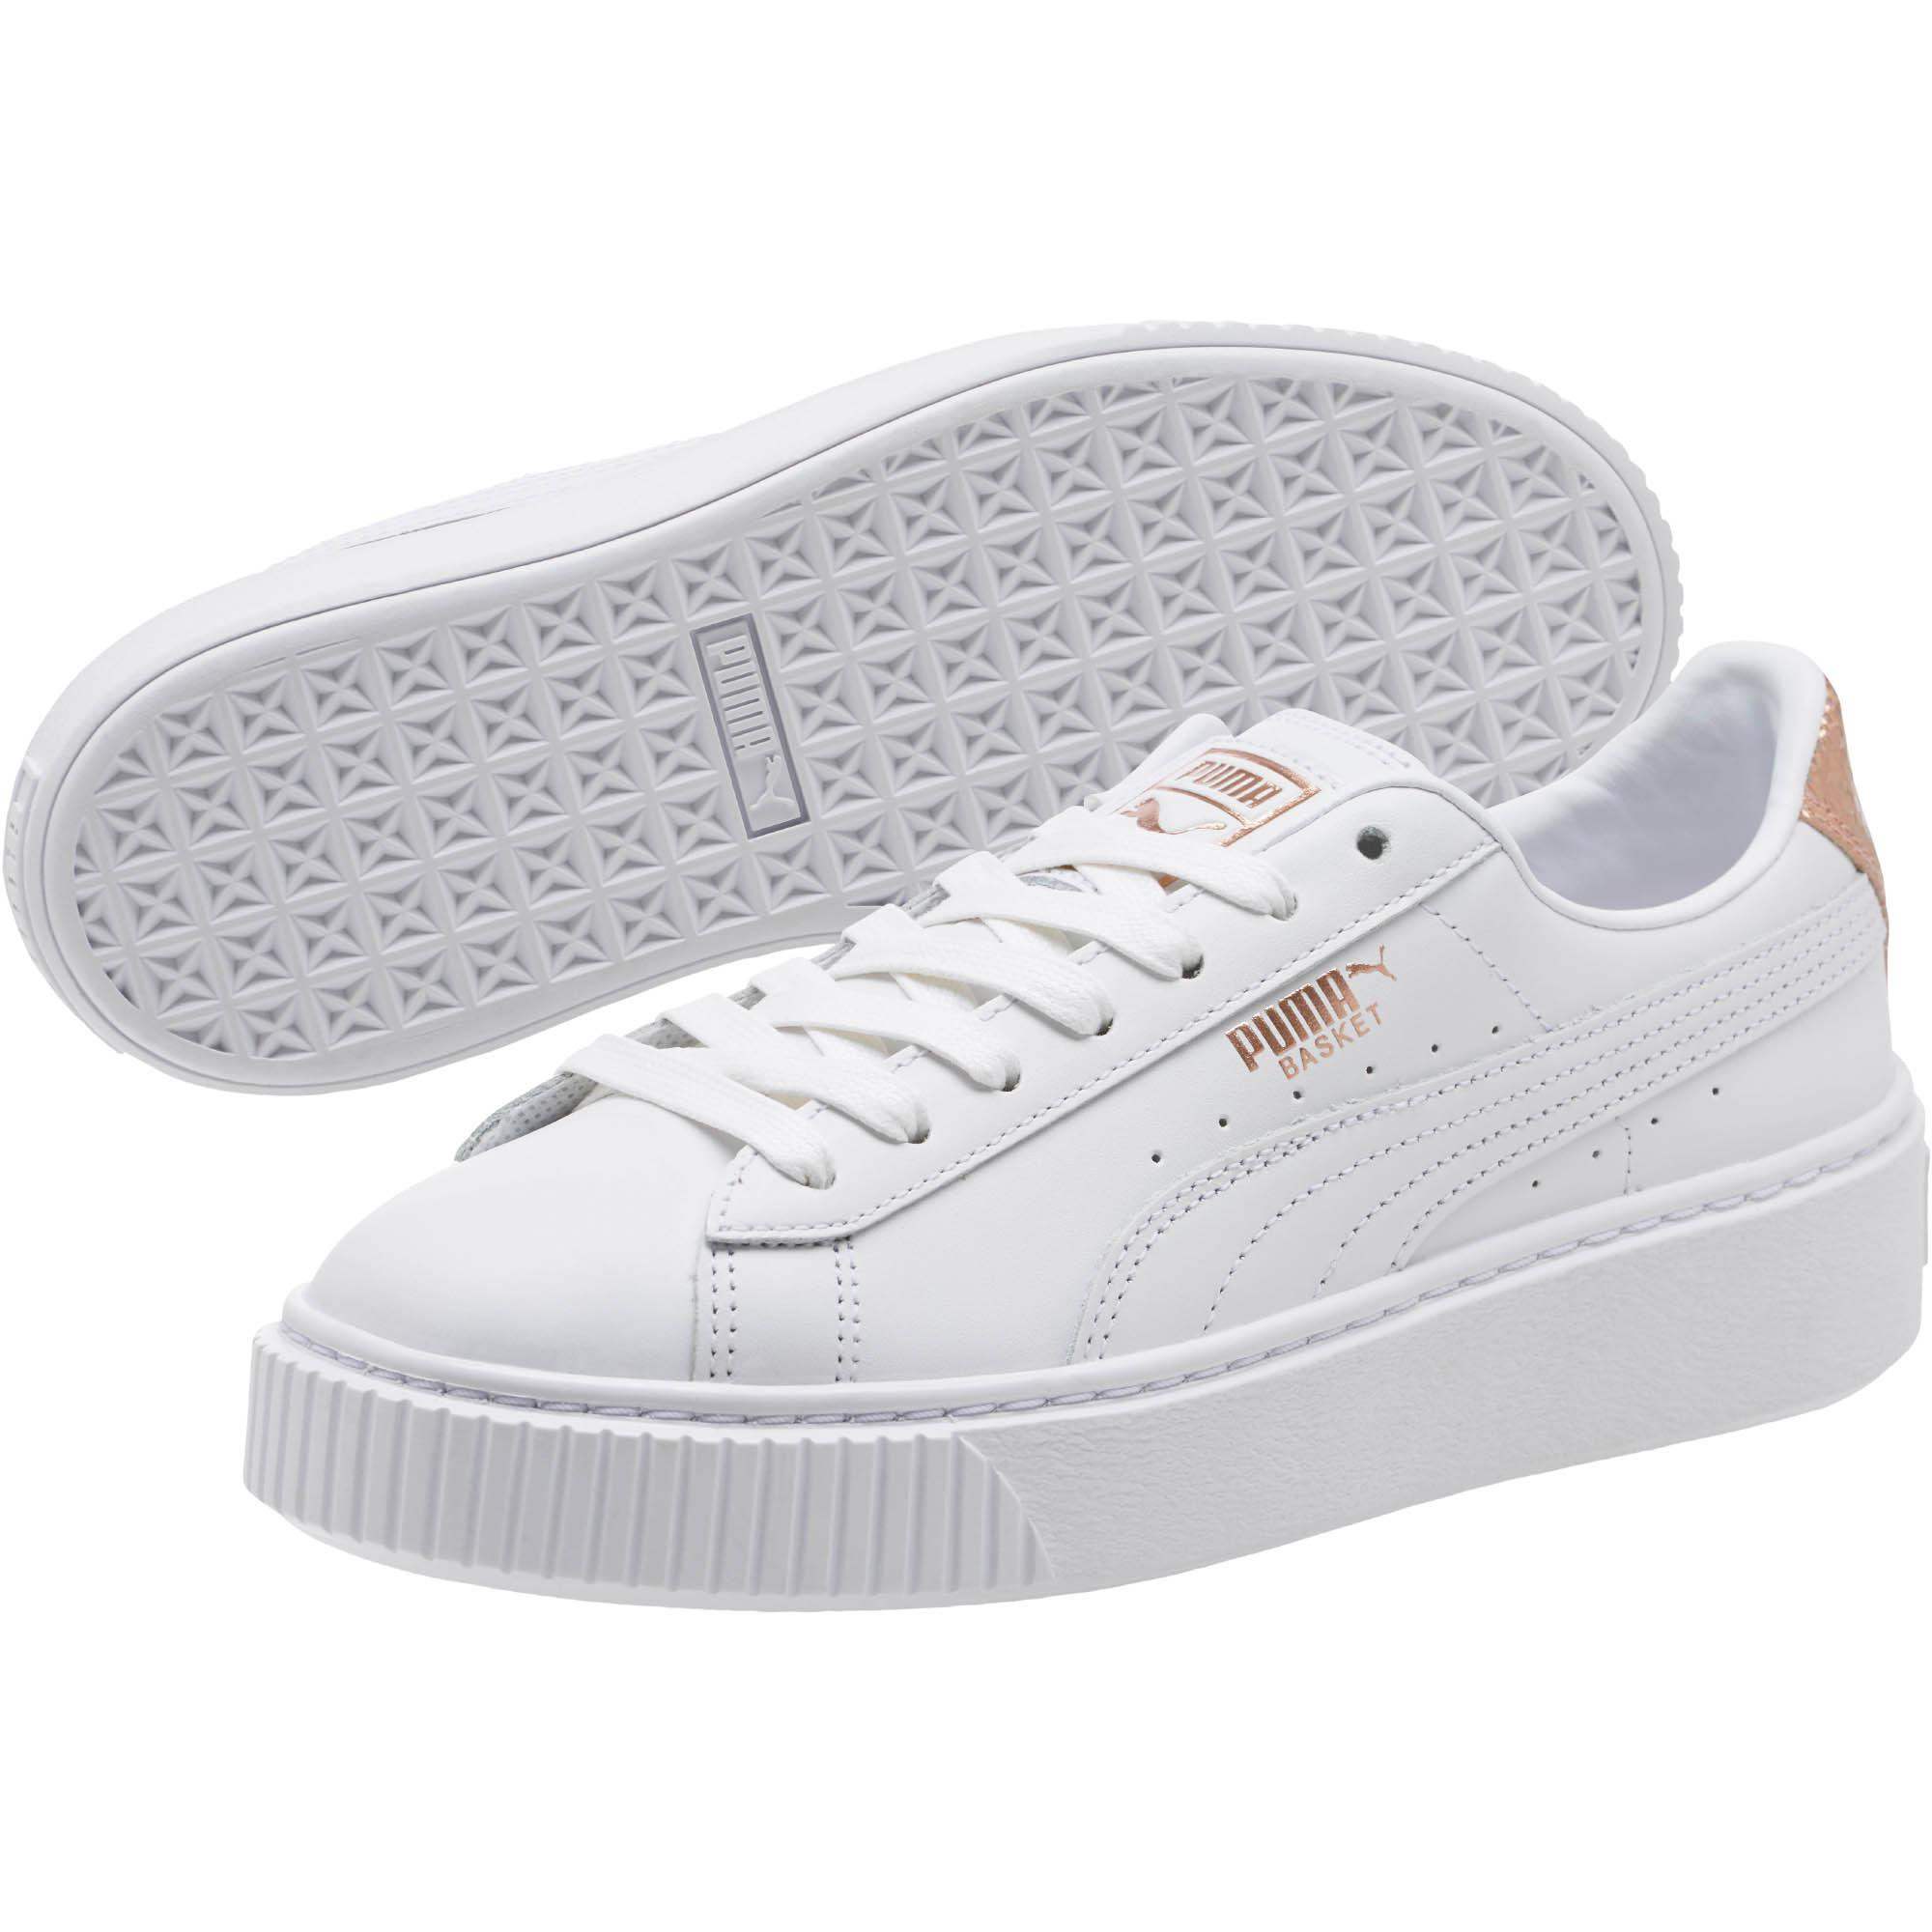 62a463bf285a Lyst - PUMA Basket Platform Rg Women s Sneakers in White